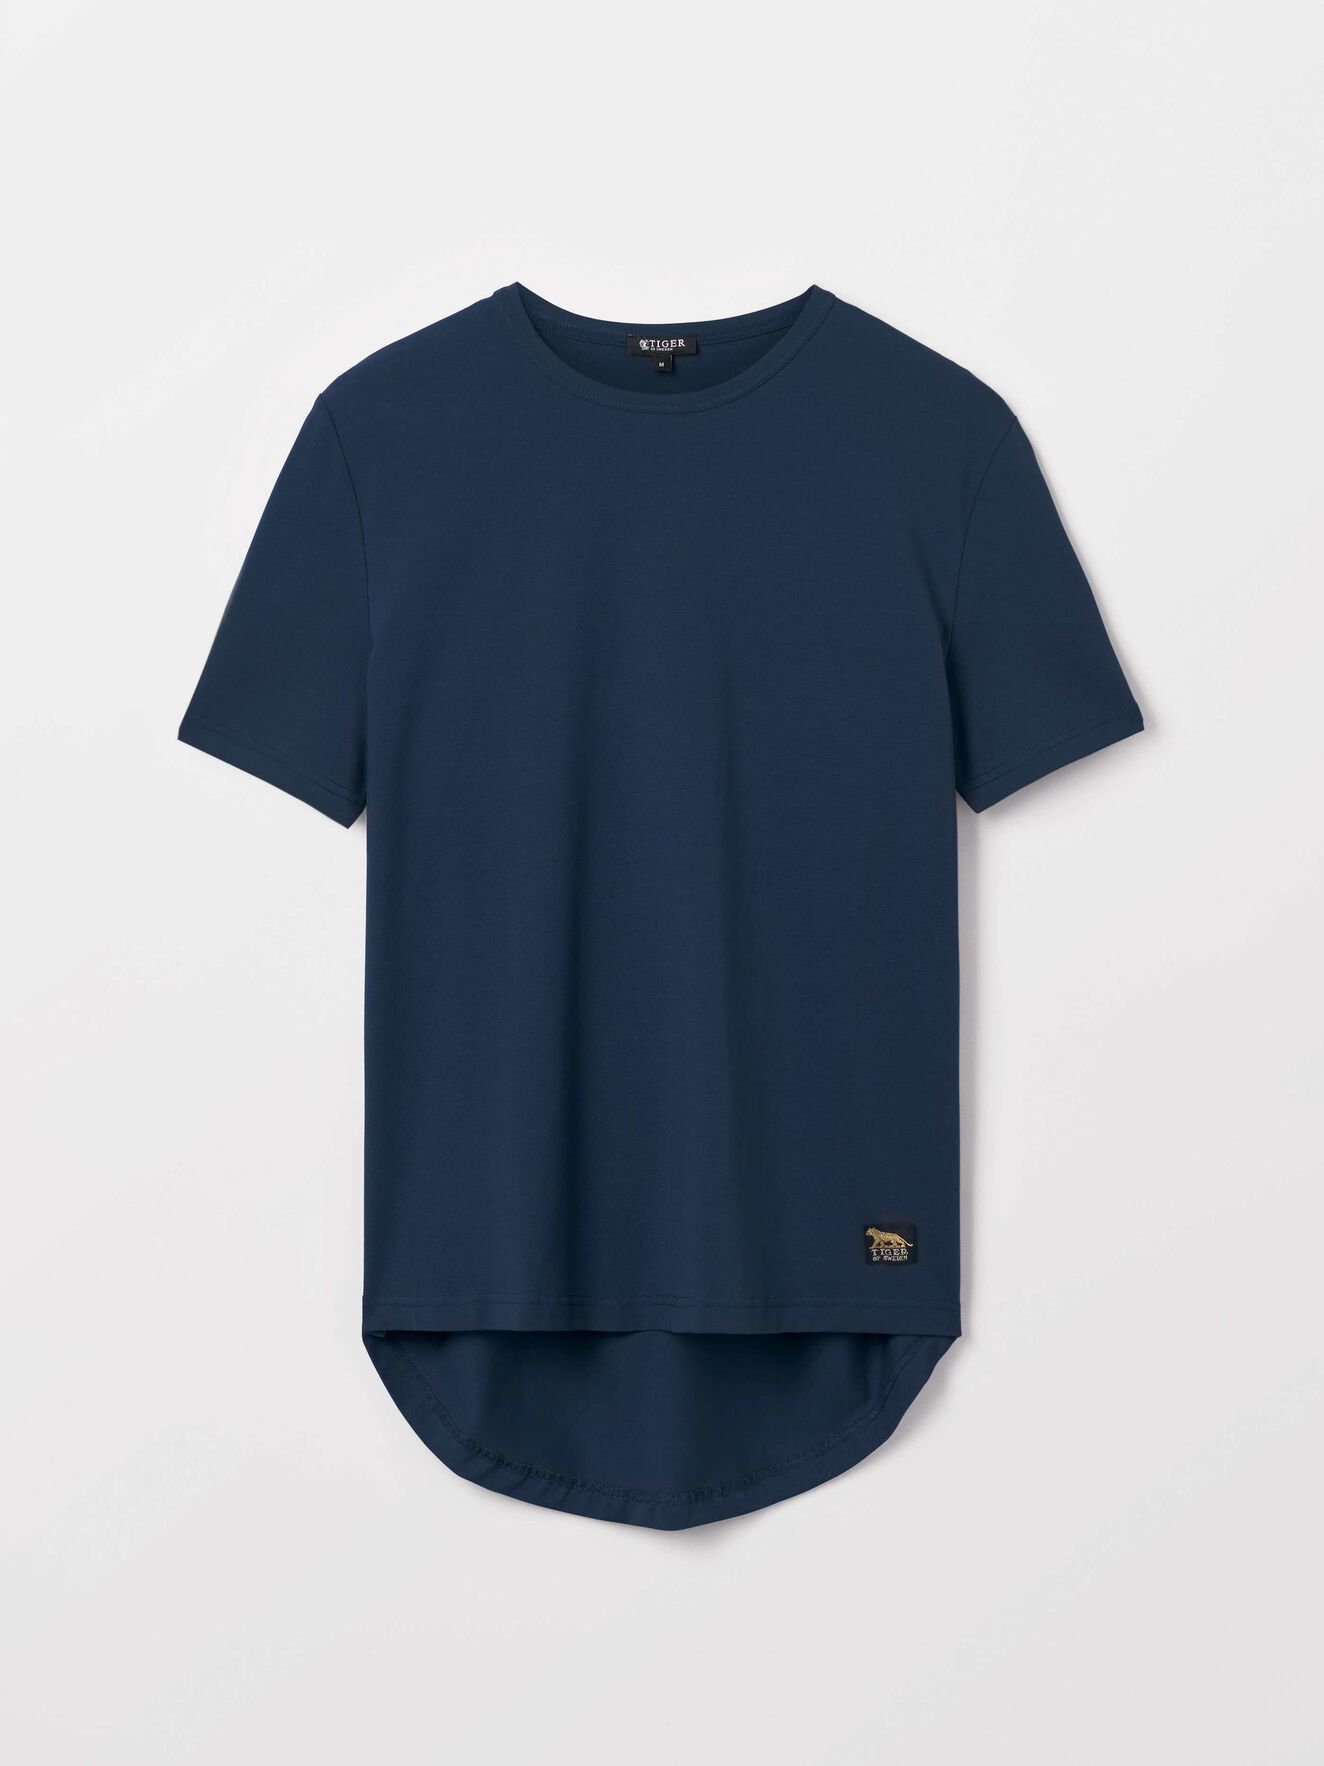 Donlon T-Shirt in Royal Blue from Tiger of Sweden